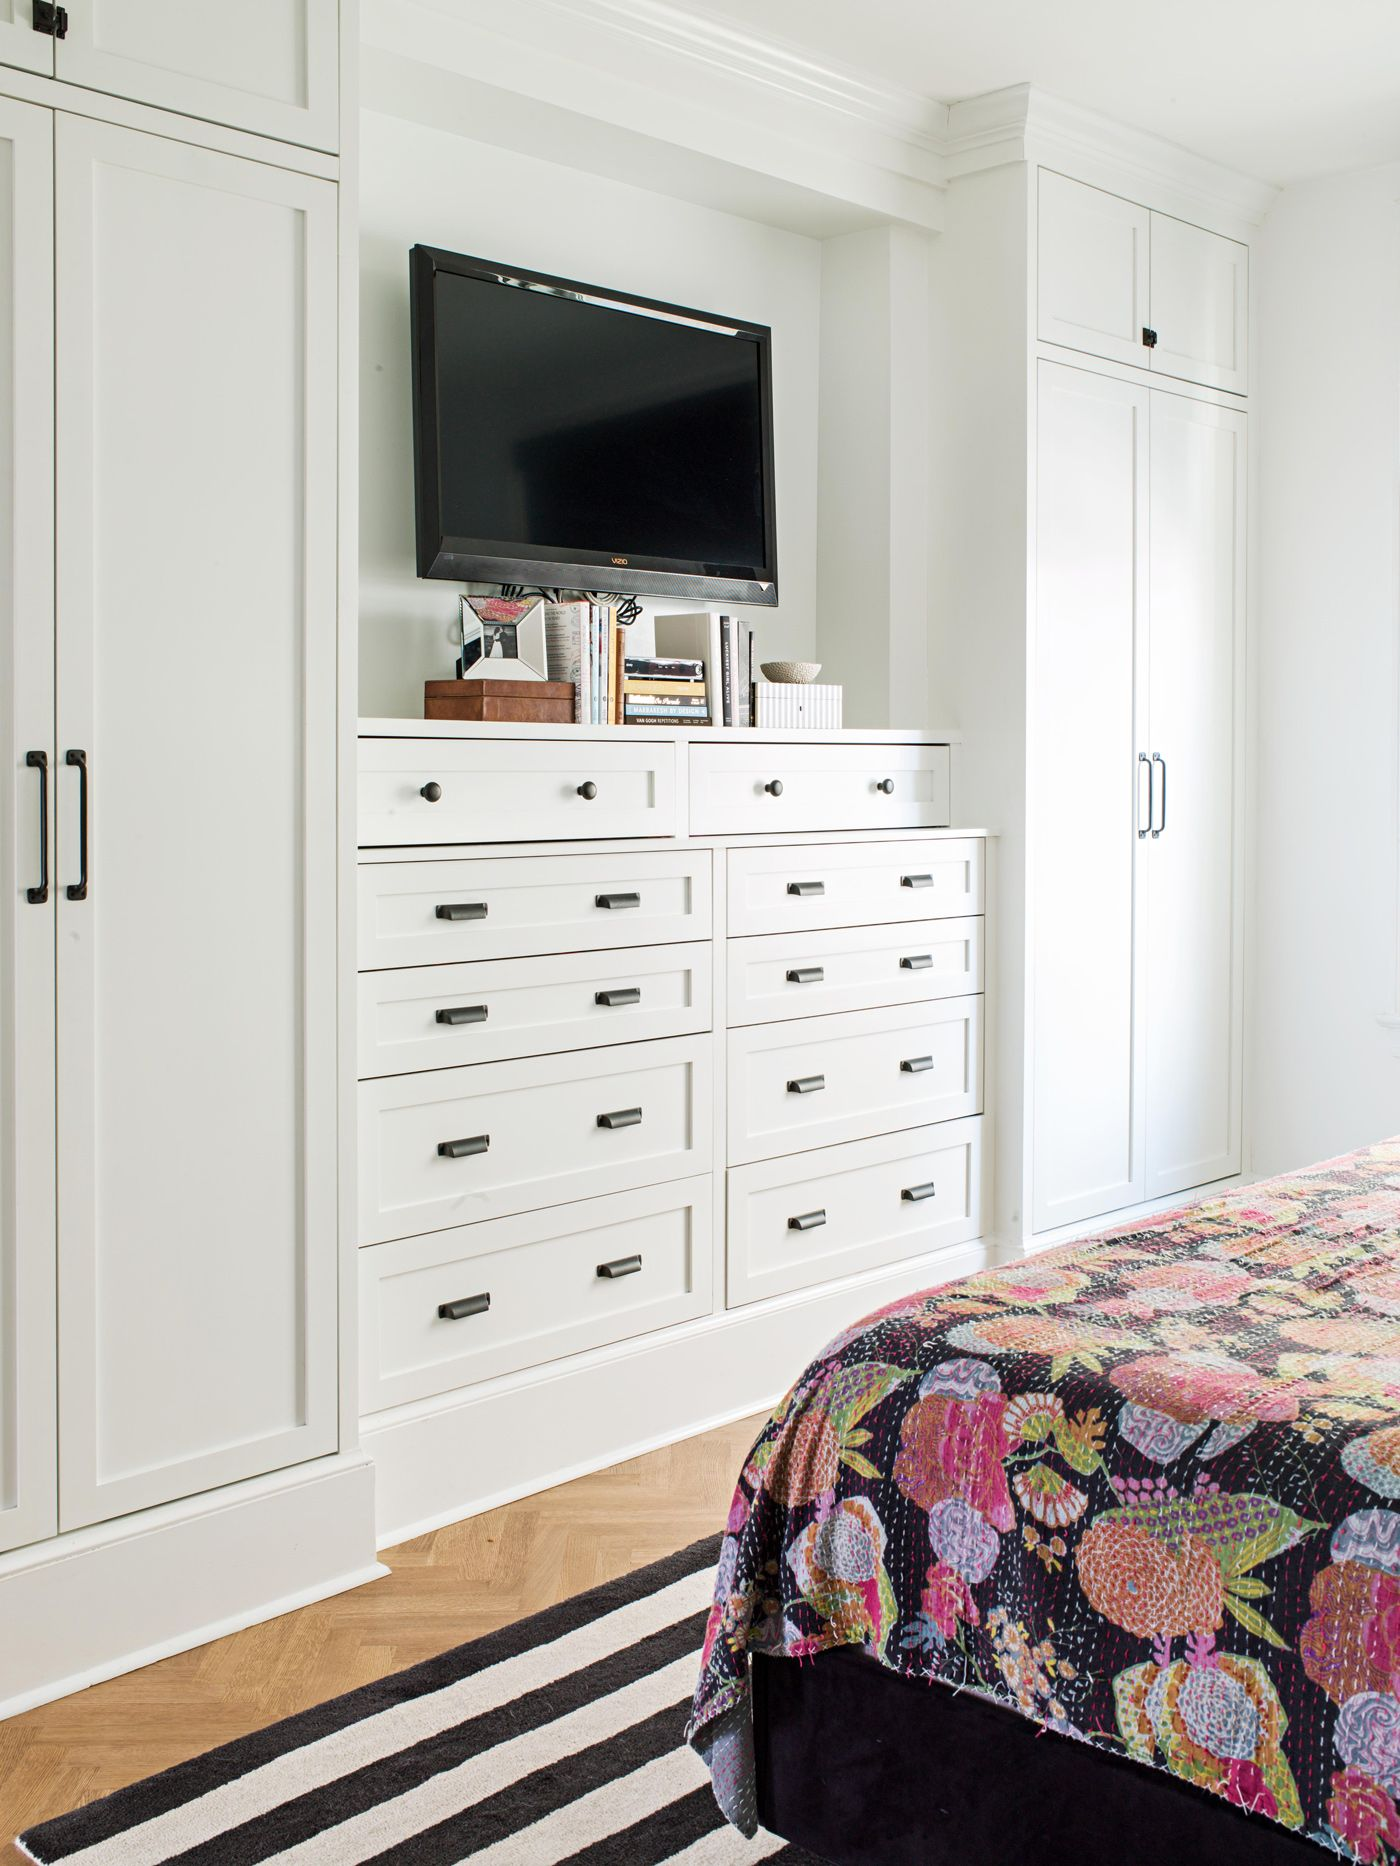 26 Clever Bedroom Storage Solutions For A More Organized Sleeping Space In 2020 Bedroom Built Ins Bedroom Wall Closets Build A Closet